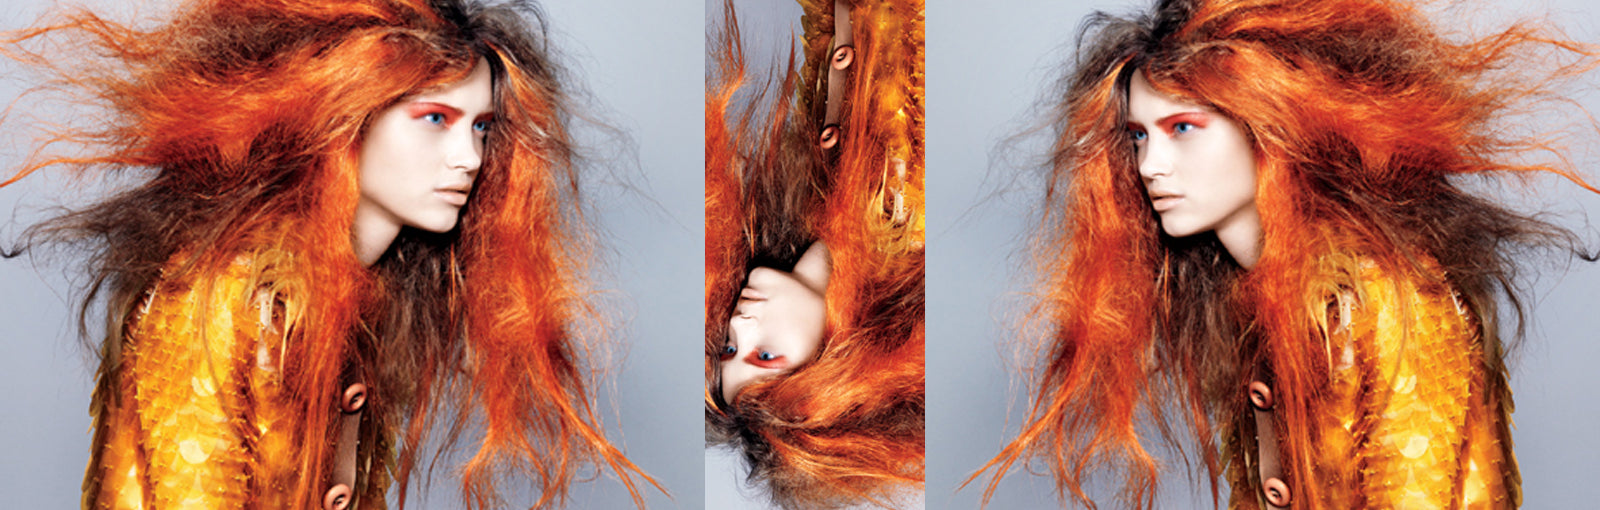 THE HAIR RAISING ART OF STYLIST GUIDO PALAU